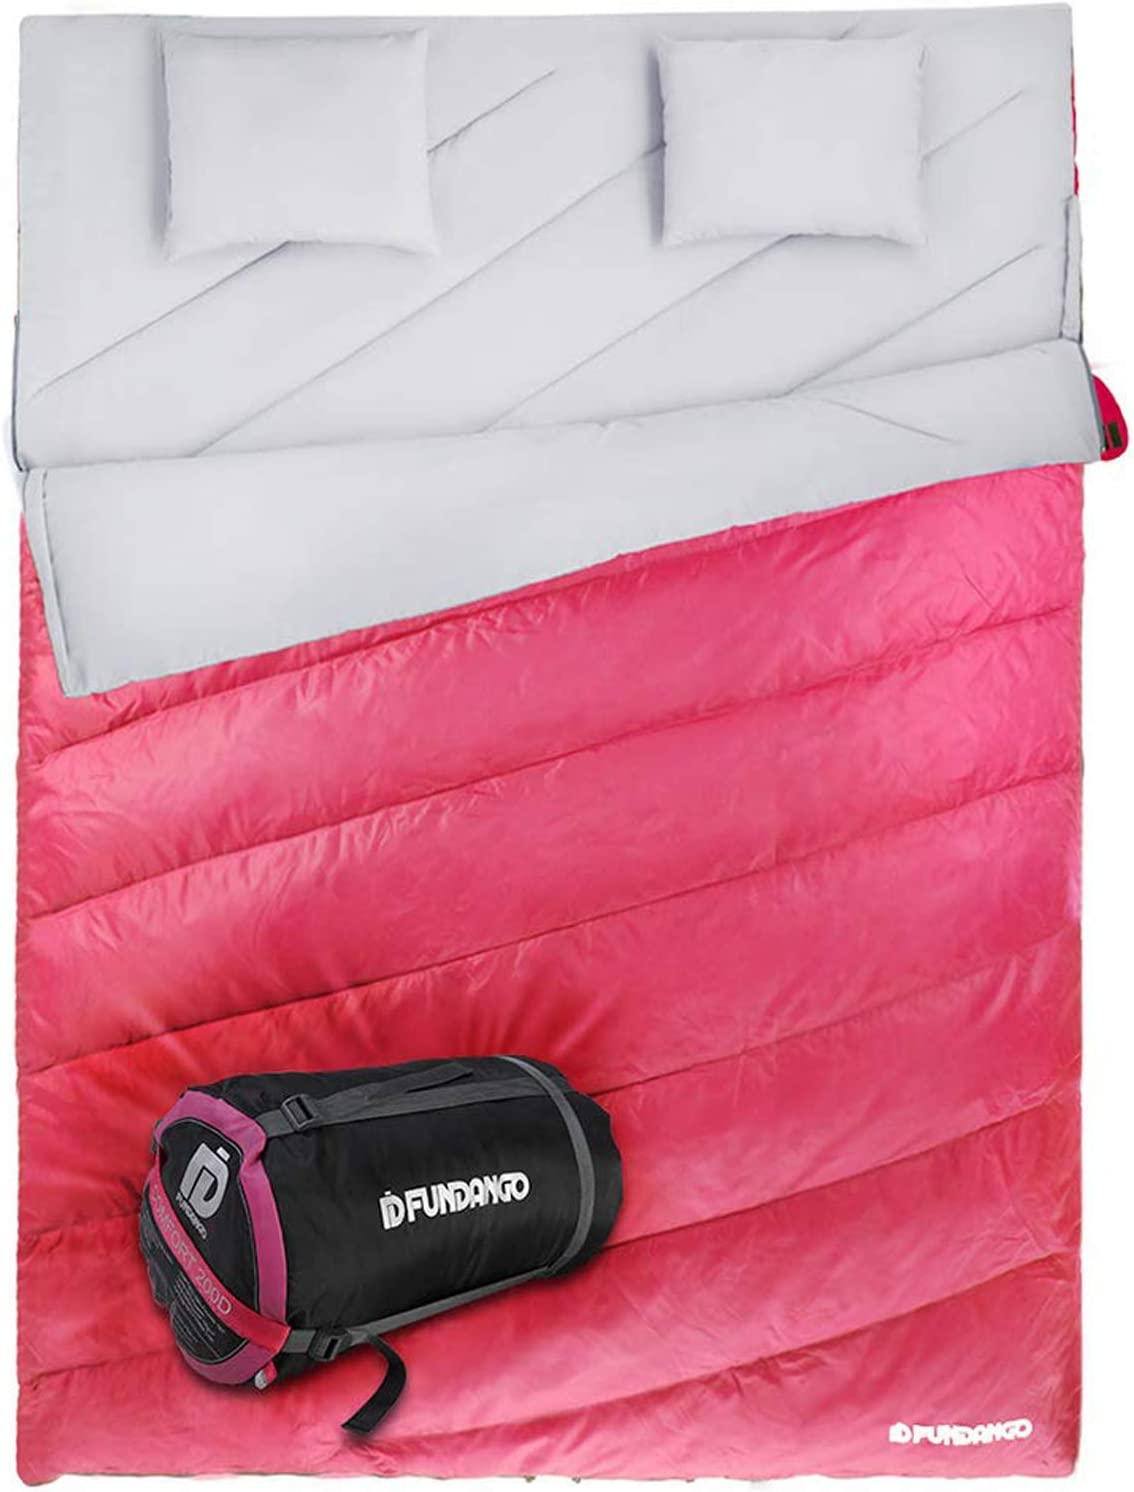 FUNDANGO 3-in-1 Max 57% OFF Queen Size Double Nashville-Davidson Mall Sleeping Pillows 2 with fo Bag